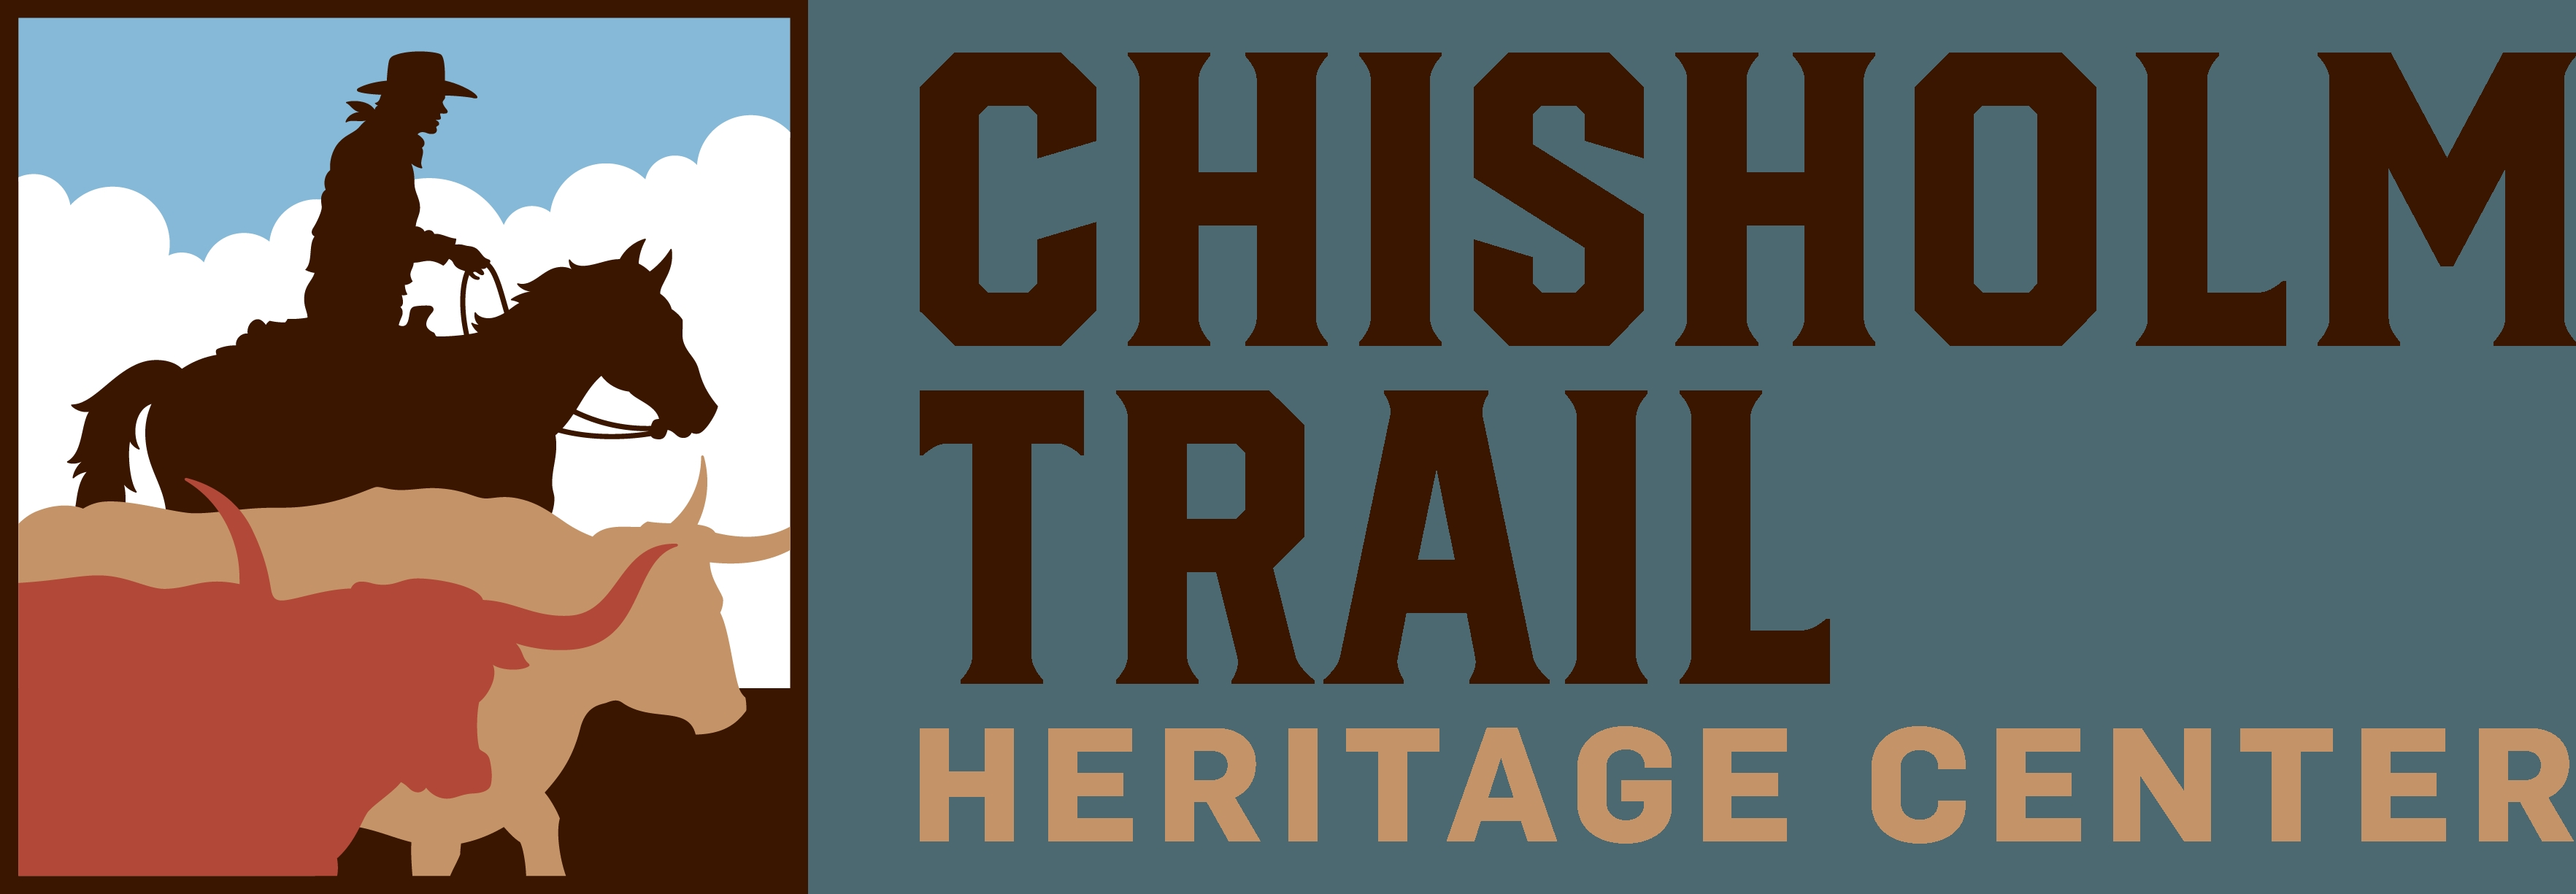 Chisholm Trail Heritage Center